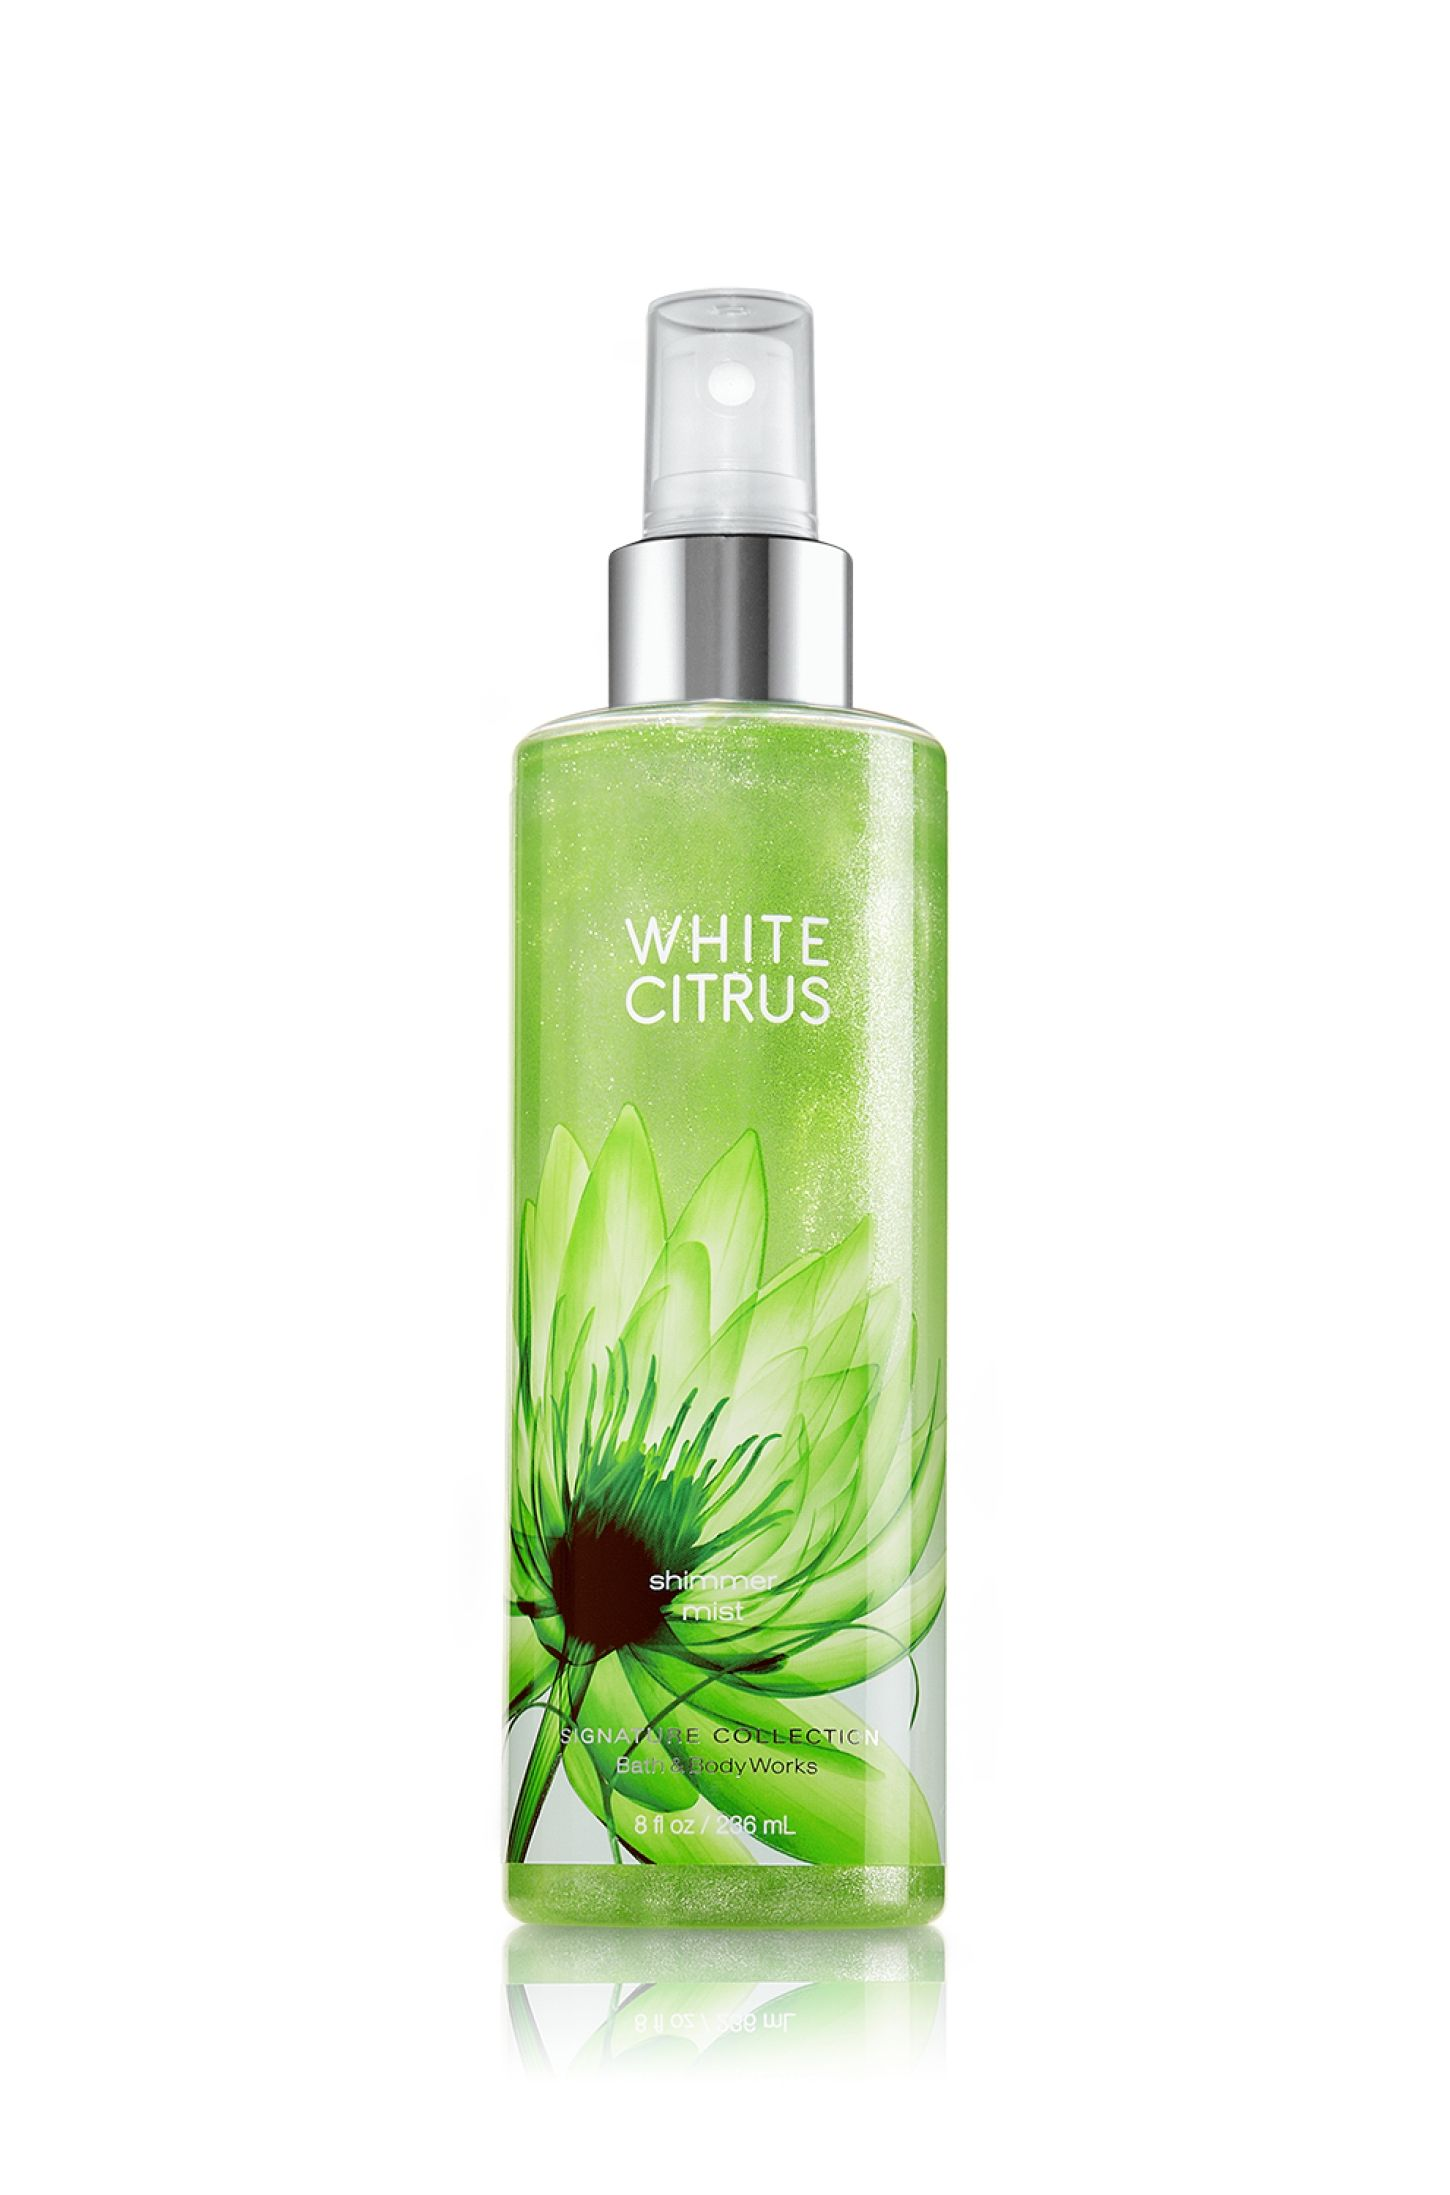 White Citrus Shimmer Body Mist Signature Collection Bath